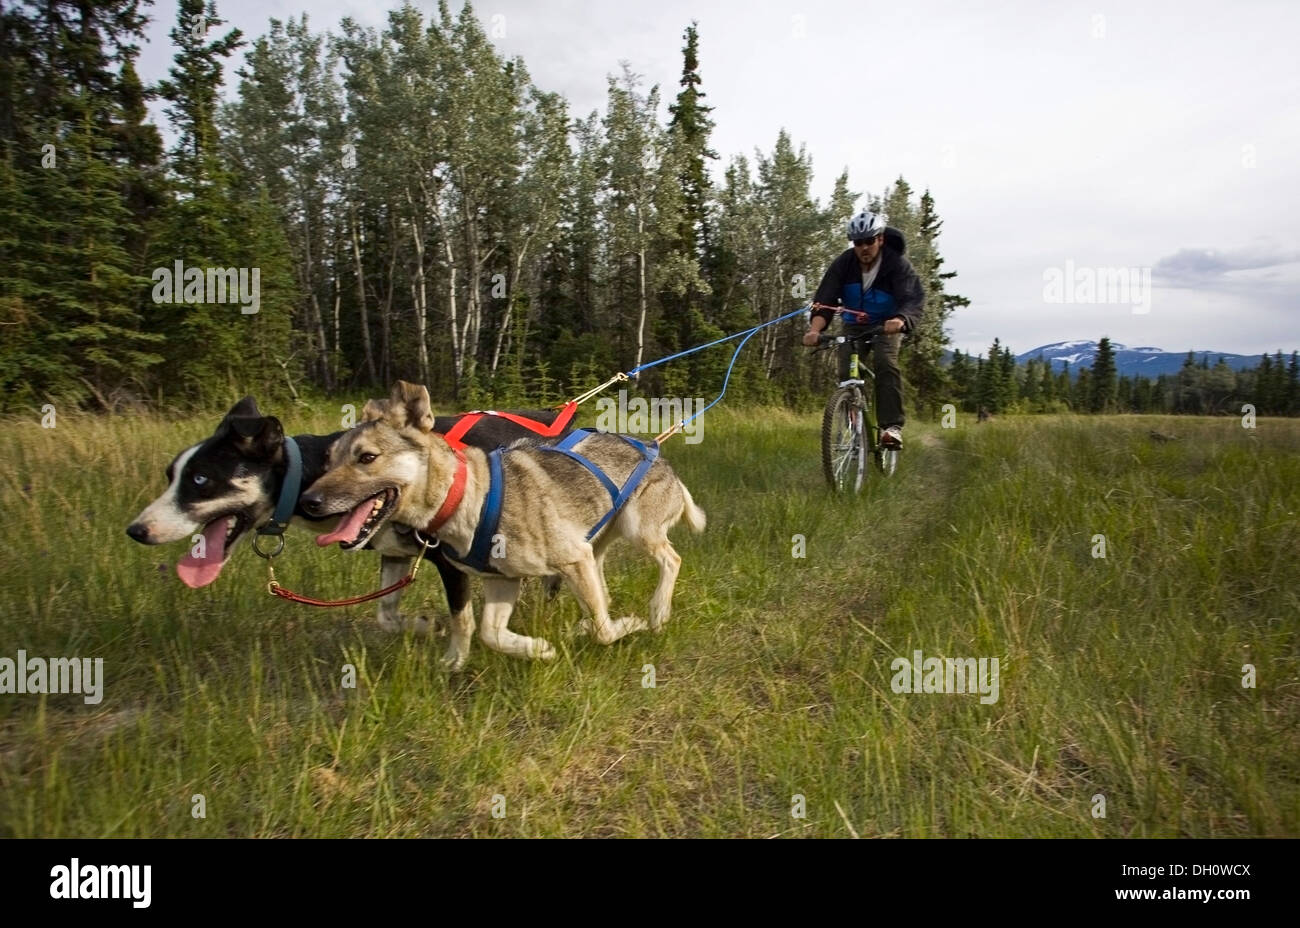 Dog Scootering Videos